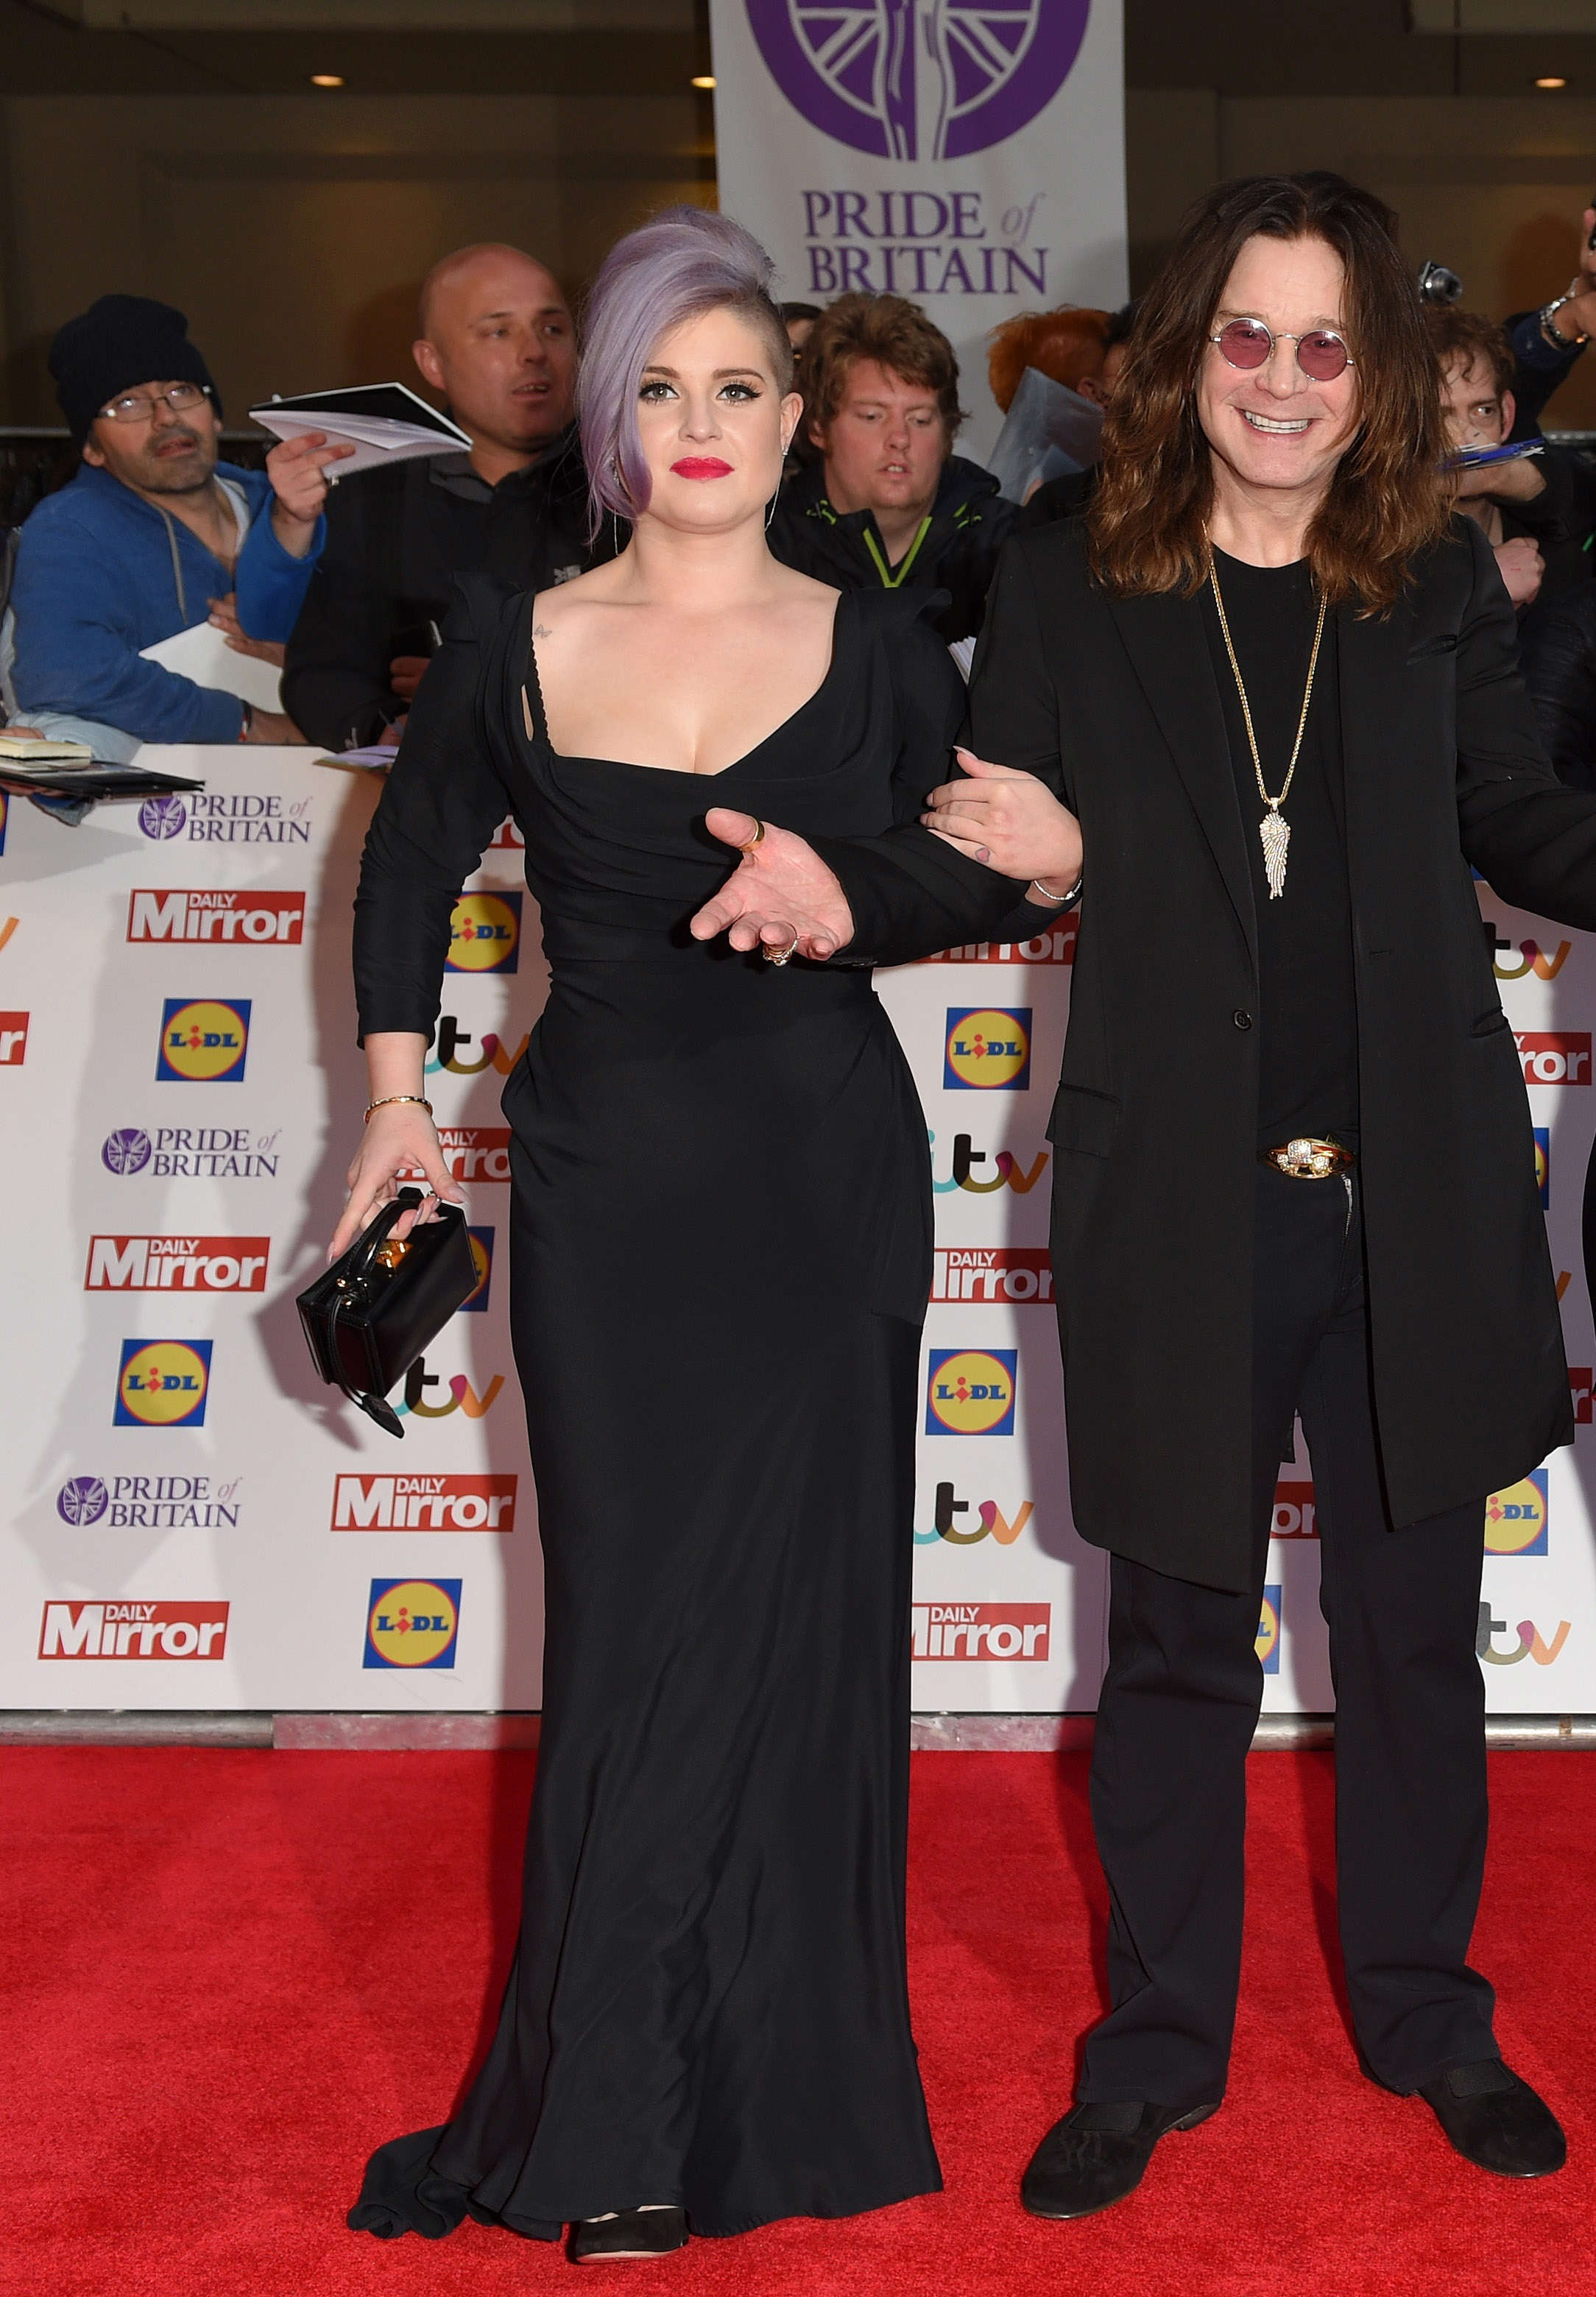 Slide 18 of 18: LONDON, ENGLAND - SEPTEMBER 28:  Kelly Osbourne, Ozzy Osbourne, Sharon Osbourne and Jack Osbourne attend the Pride of Britain awards at The Grosvenor House Hotel on September 28, 2015 in London, England.  (Photo by Karwai Tang/WireImage)